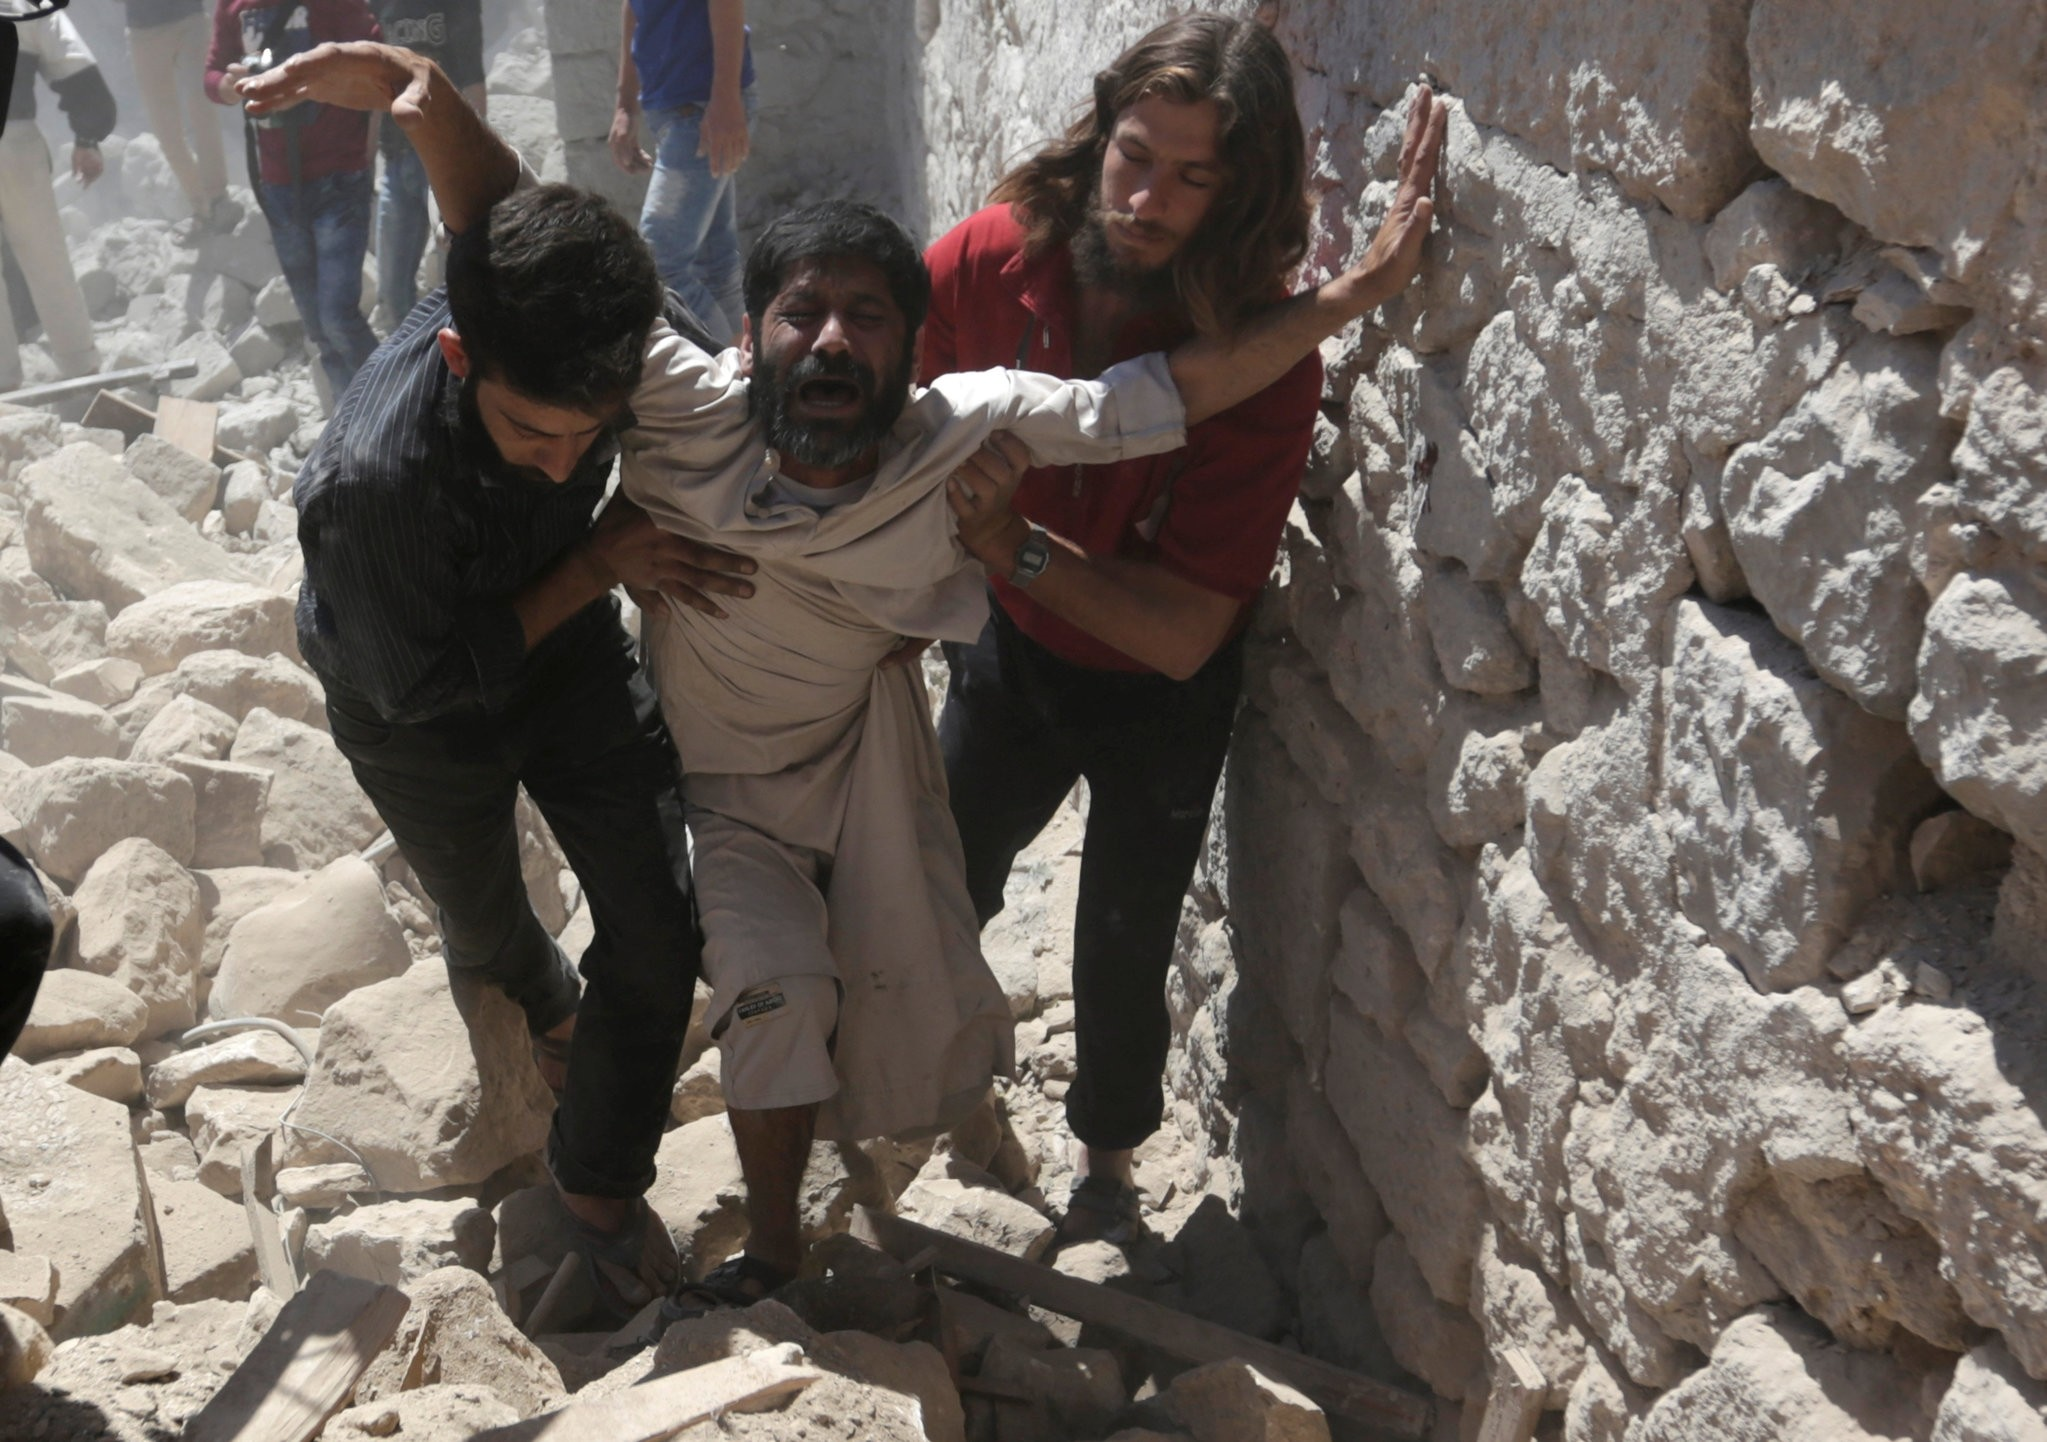 A man whose son was killed reacts at a site hit by airstrike in the rebel-controlled area of Maaret al-Numan town in Idlib province, Syria, June 12, 2016. (REUTERS Photo)